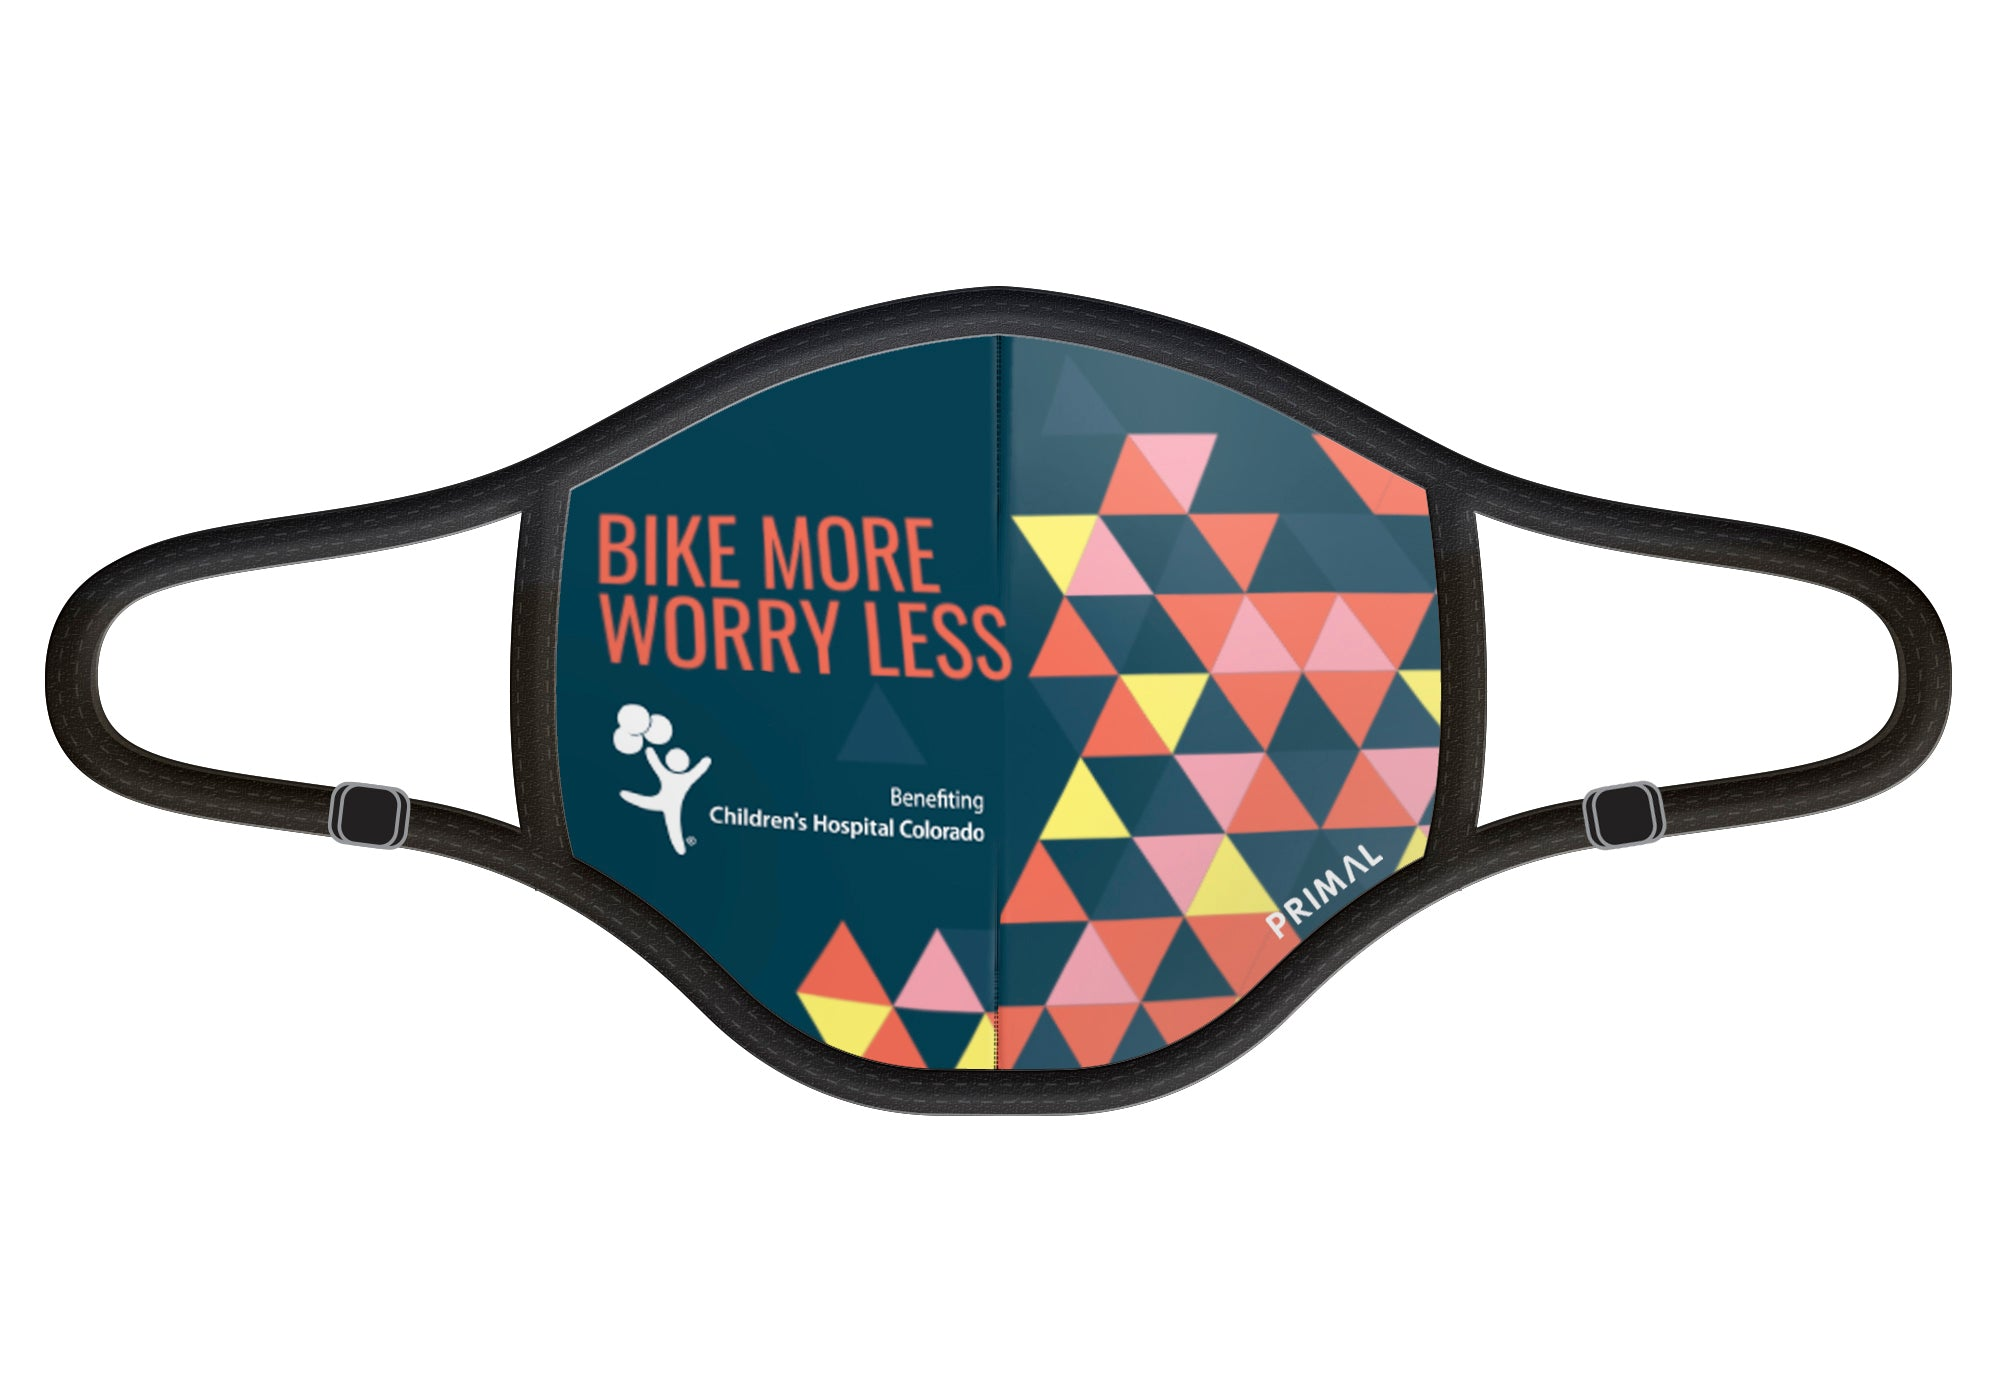 Bike More Worry Less Face Mask 2.0